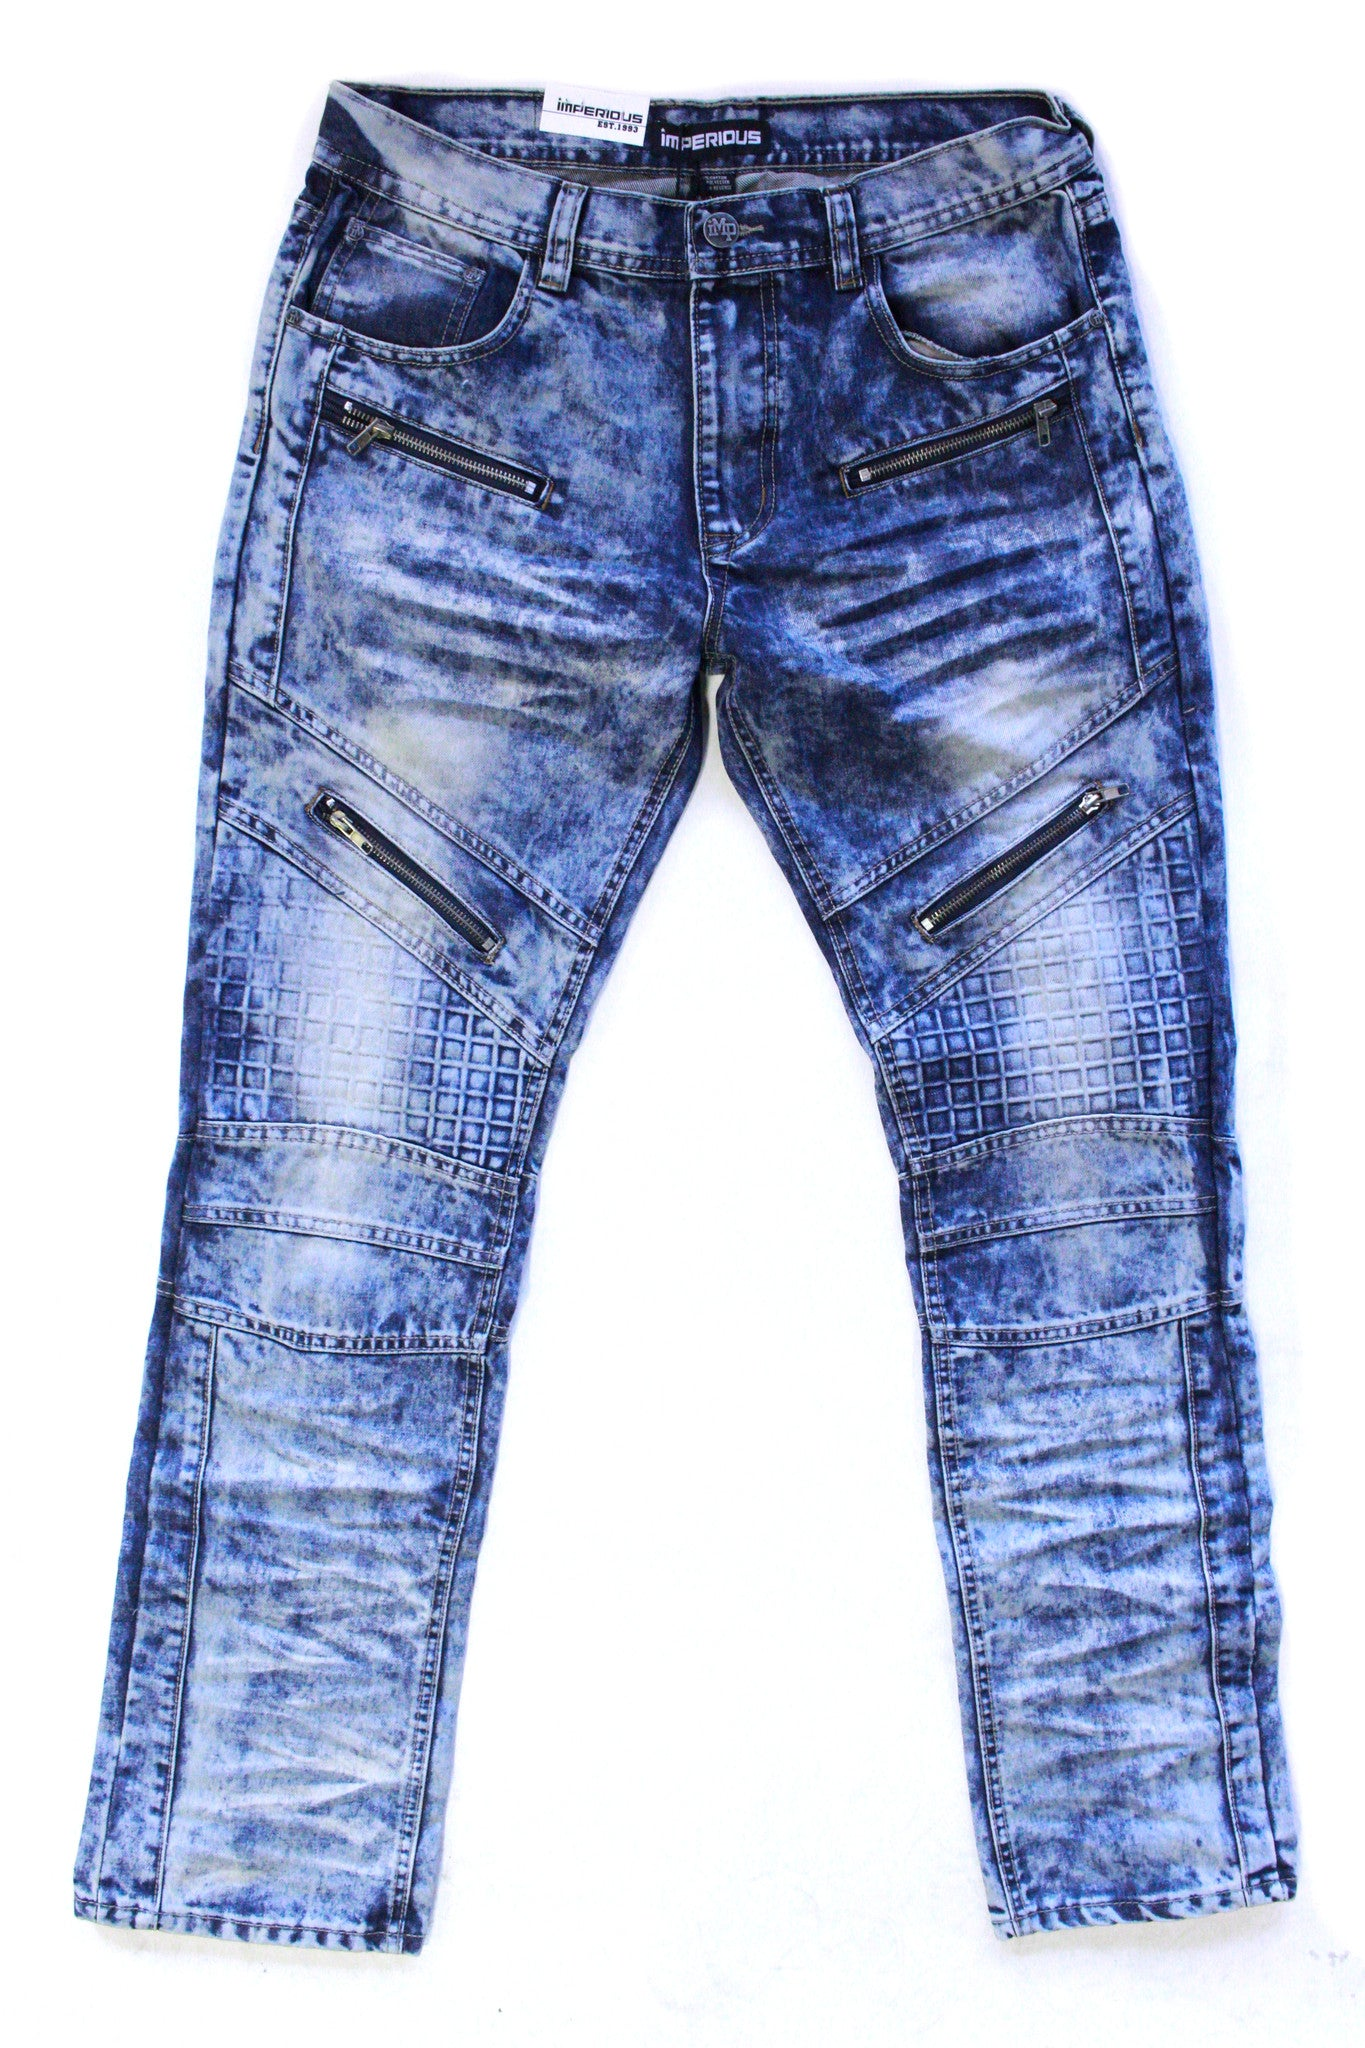 Imperious Zippered Denim Jeans